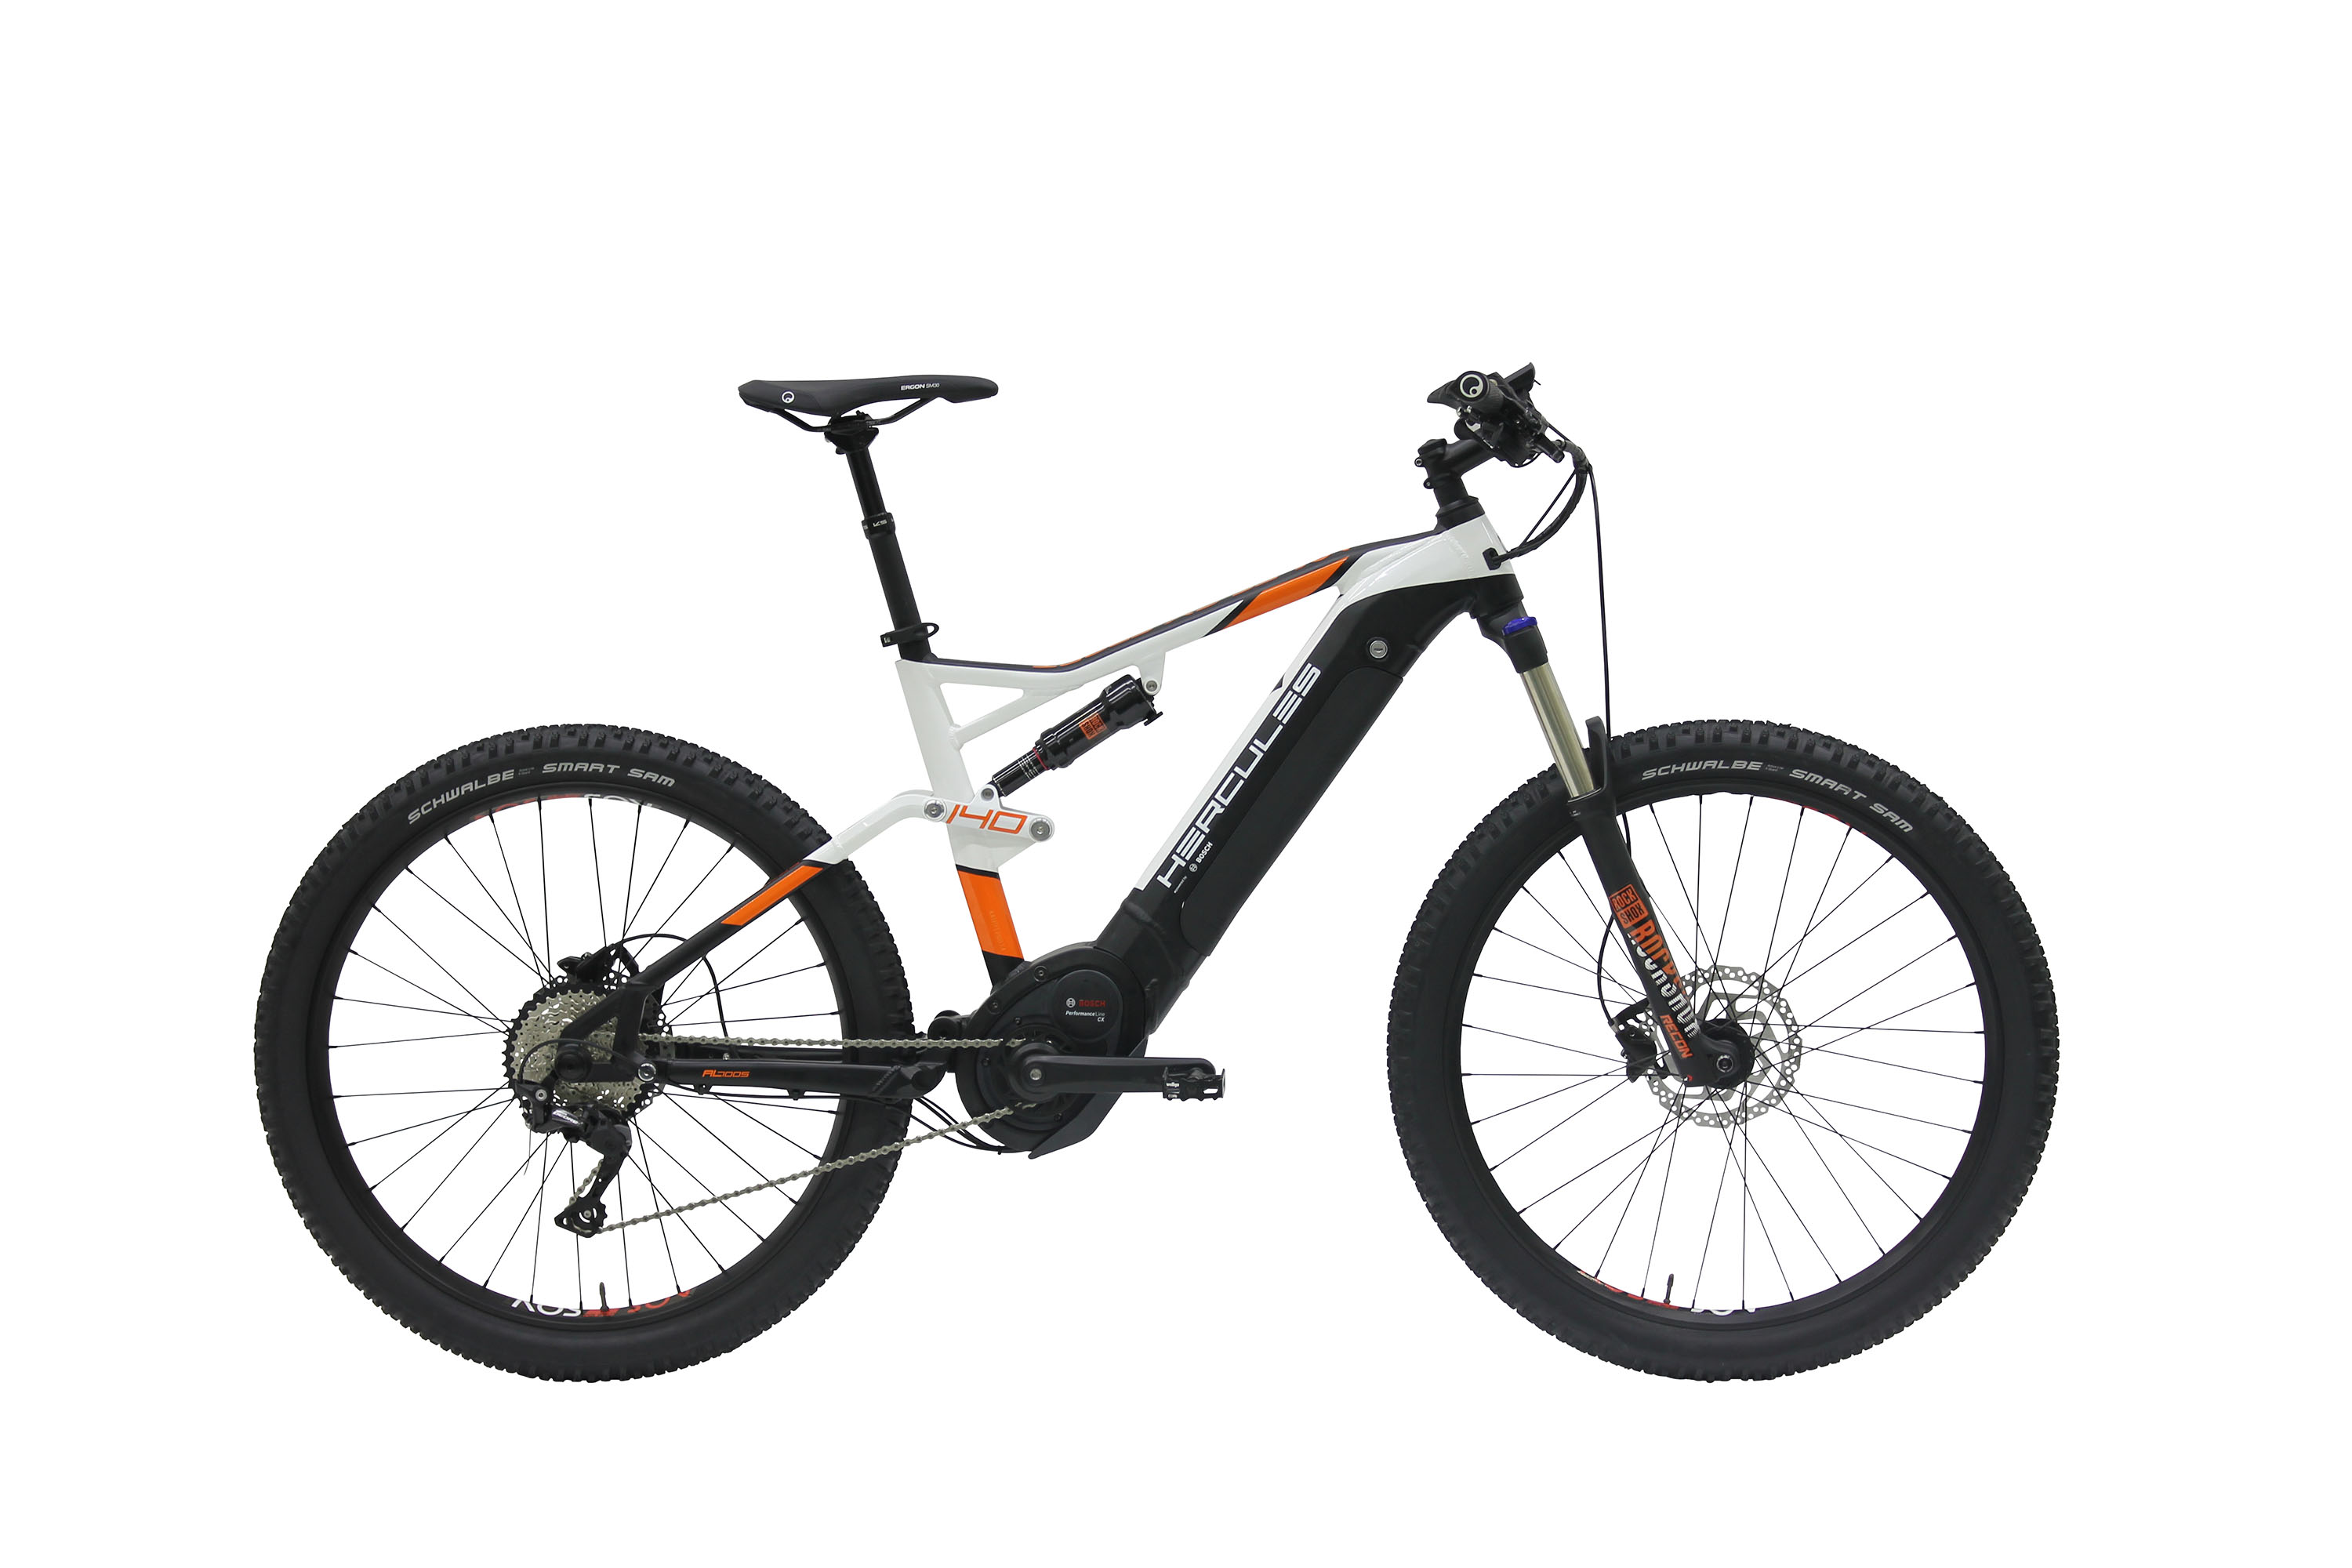 e bike geheimtipp hercules nos fs cx sport i modell 2019. Black Bedroom Furniture Sets. Home Design Ideas